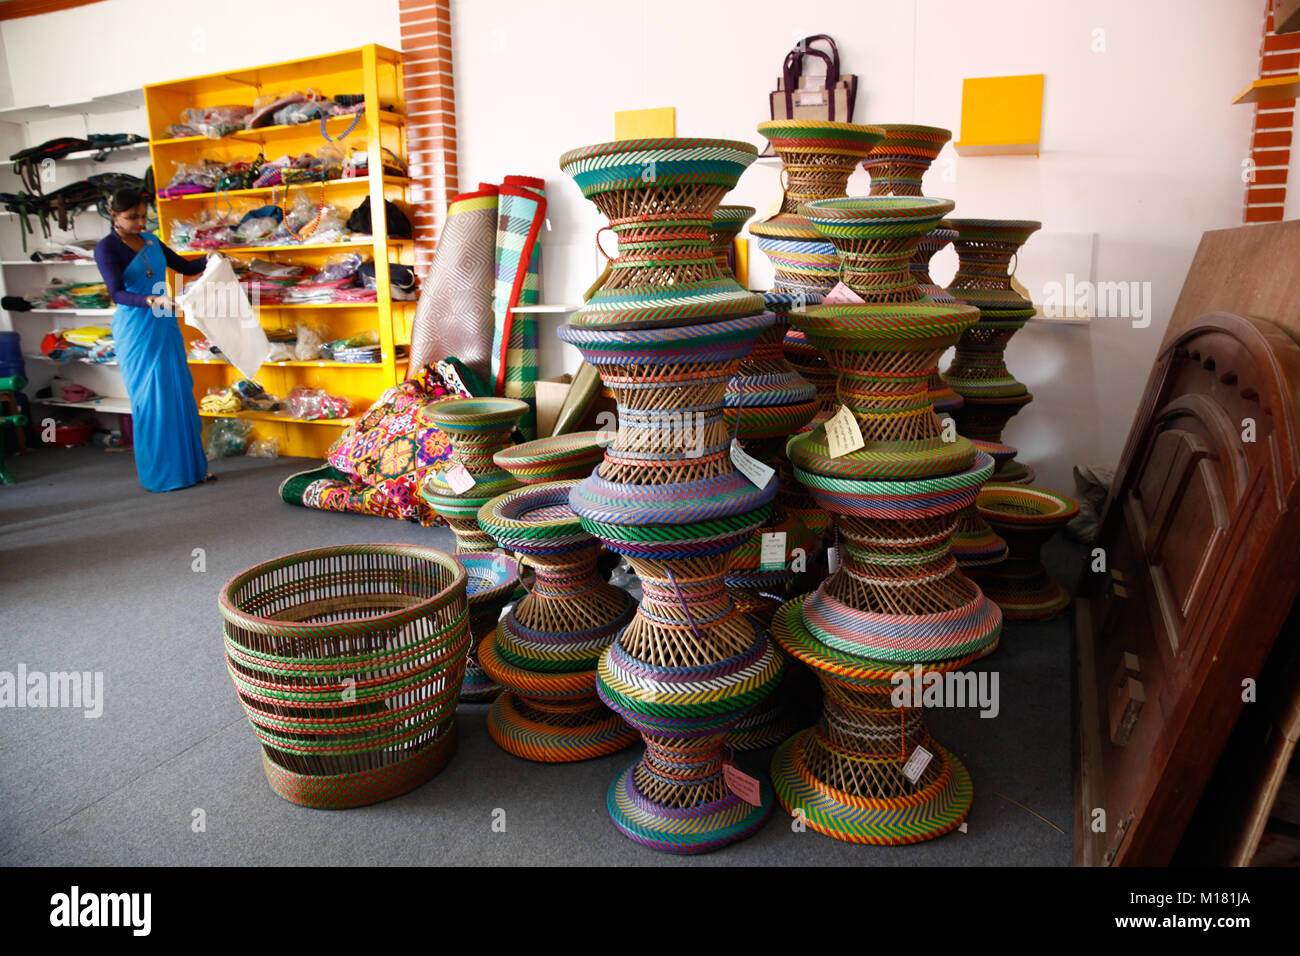 Decorative products display in a stall at Dhaka